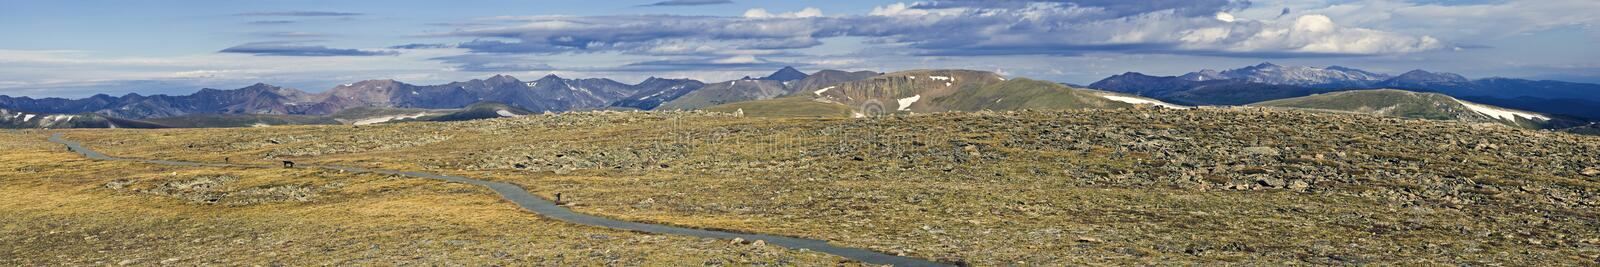 Tundra Trail In Rockies Stock Photography